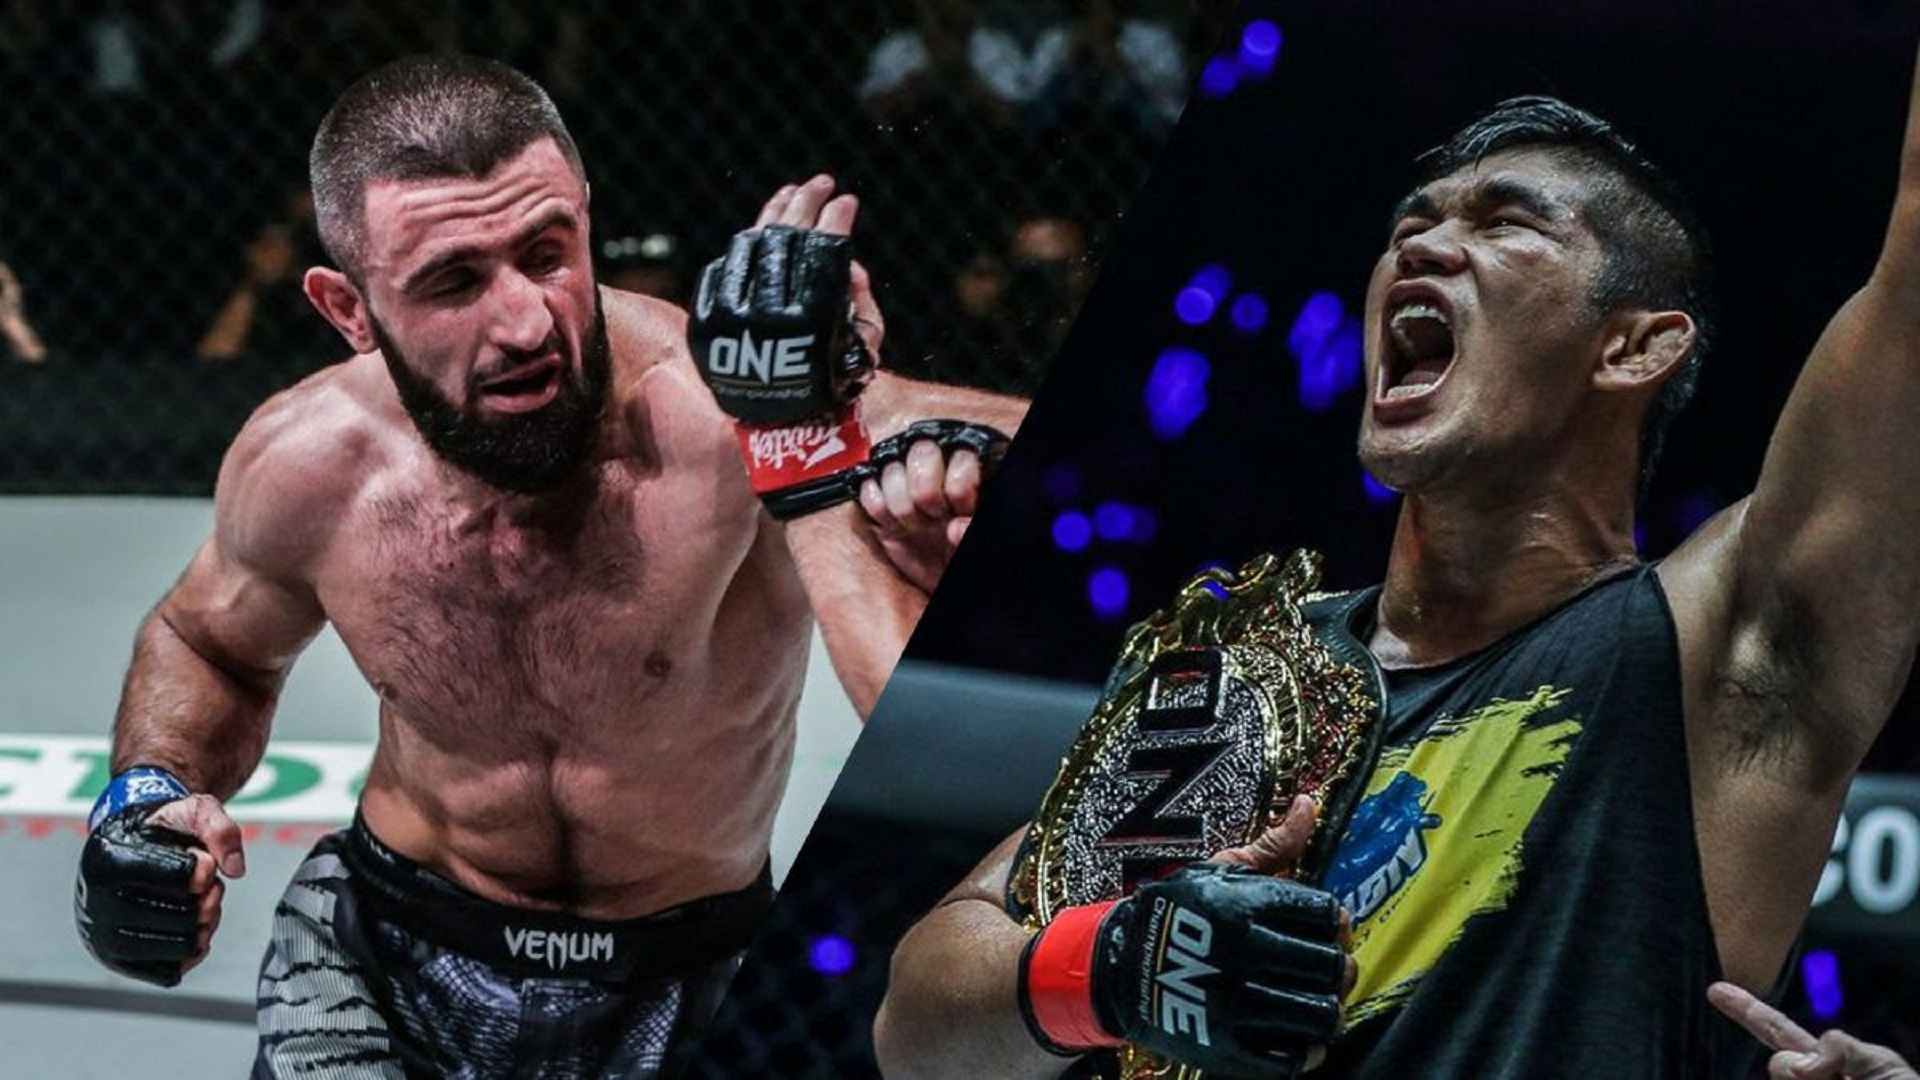 https://lockerroom.in/blog/view/Kiamrian-Abbasov-ONE-Championship-Return